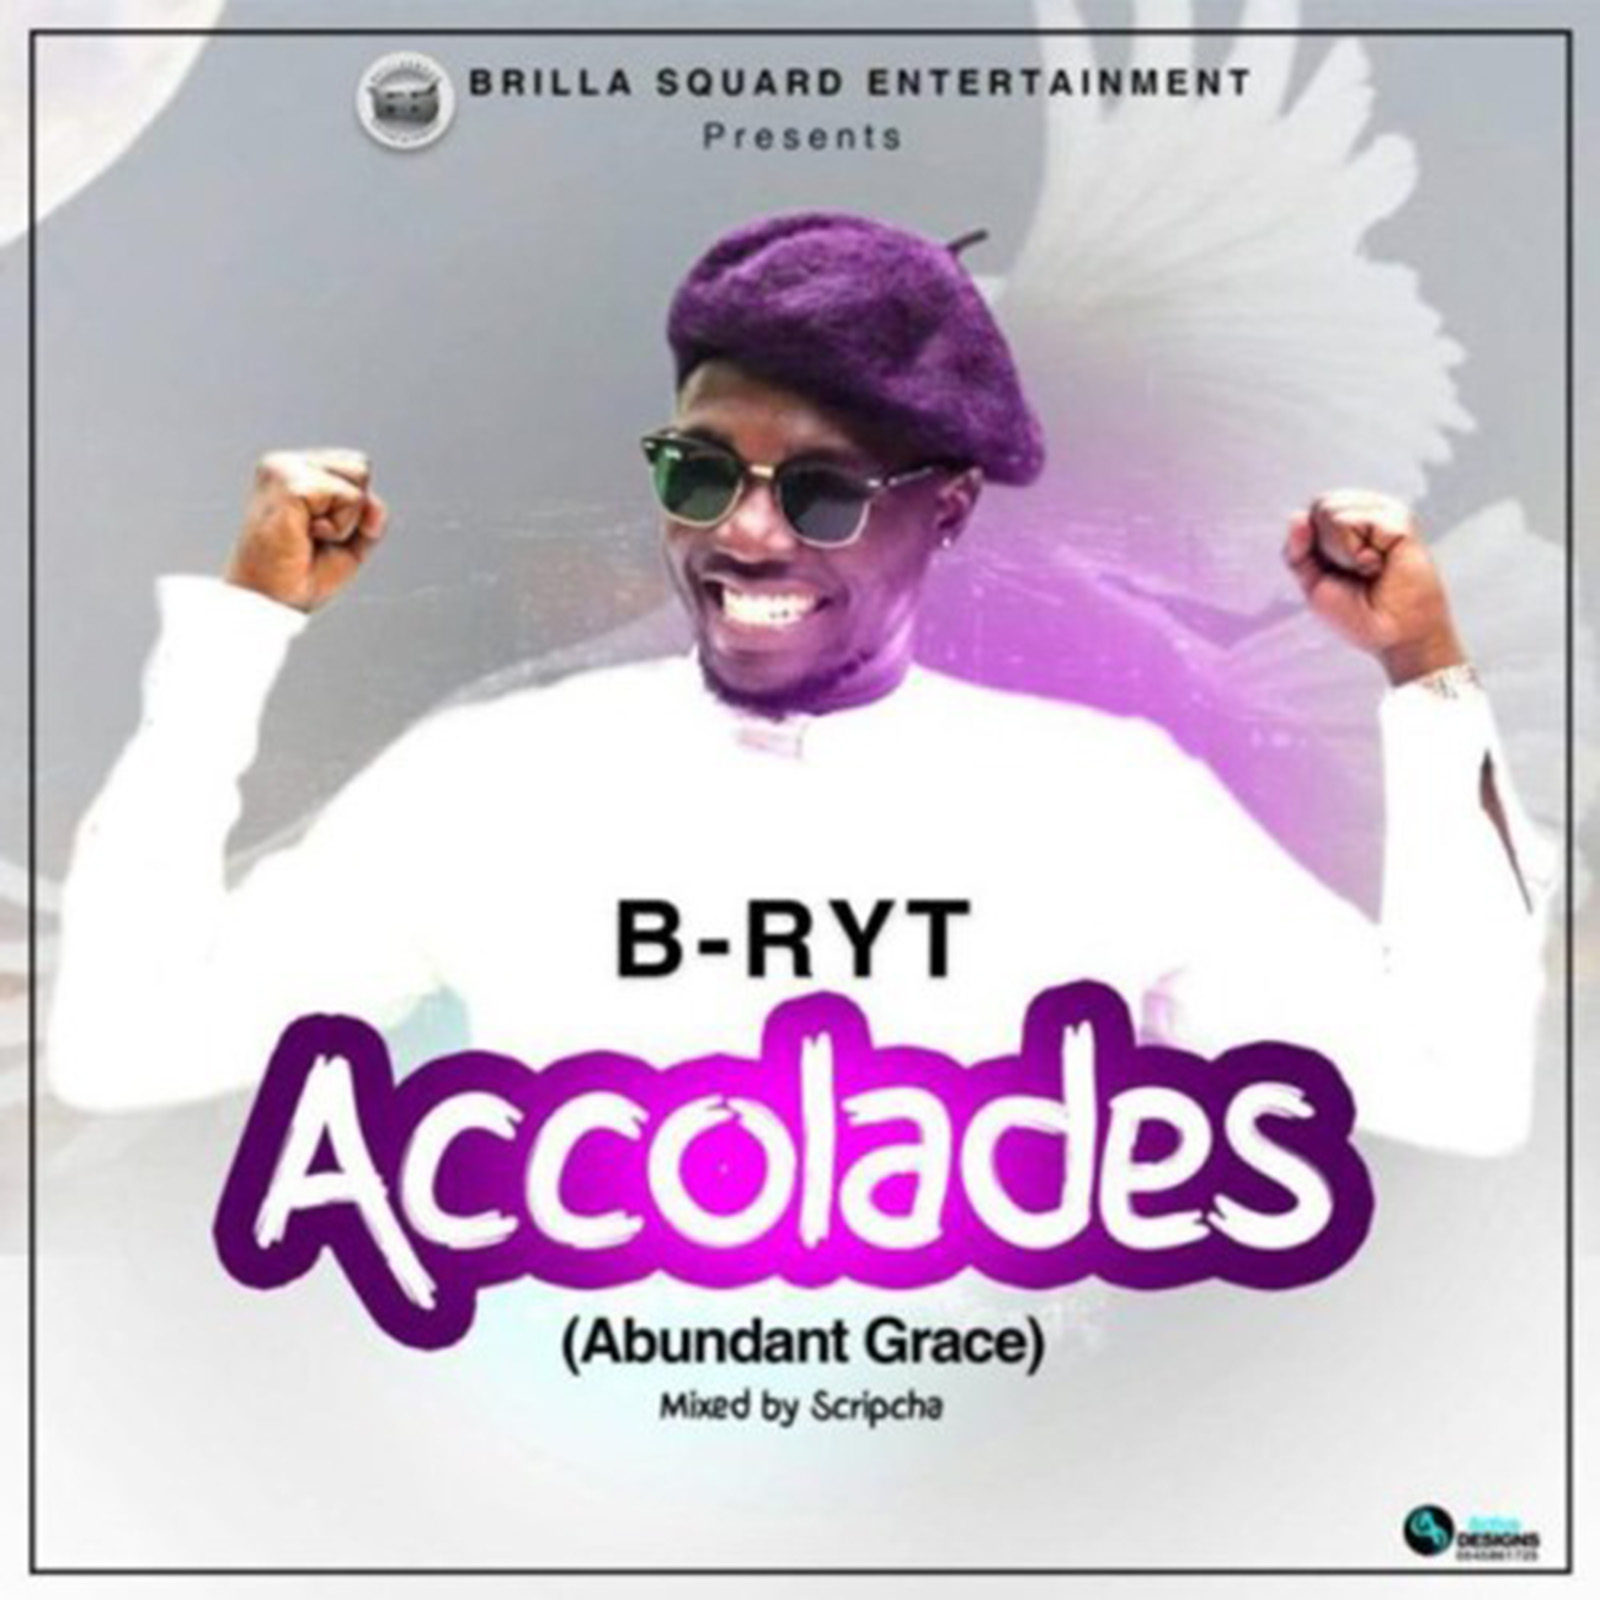 Accolades by B-Ryt